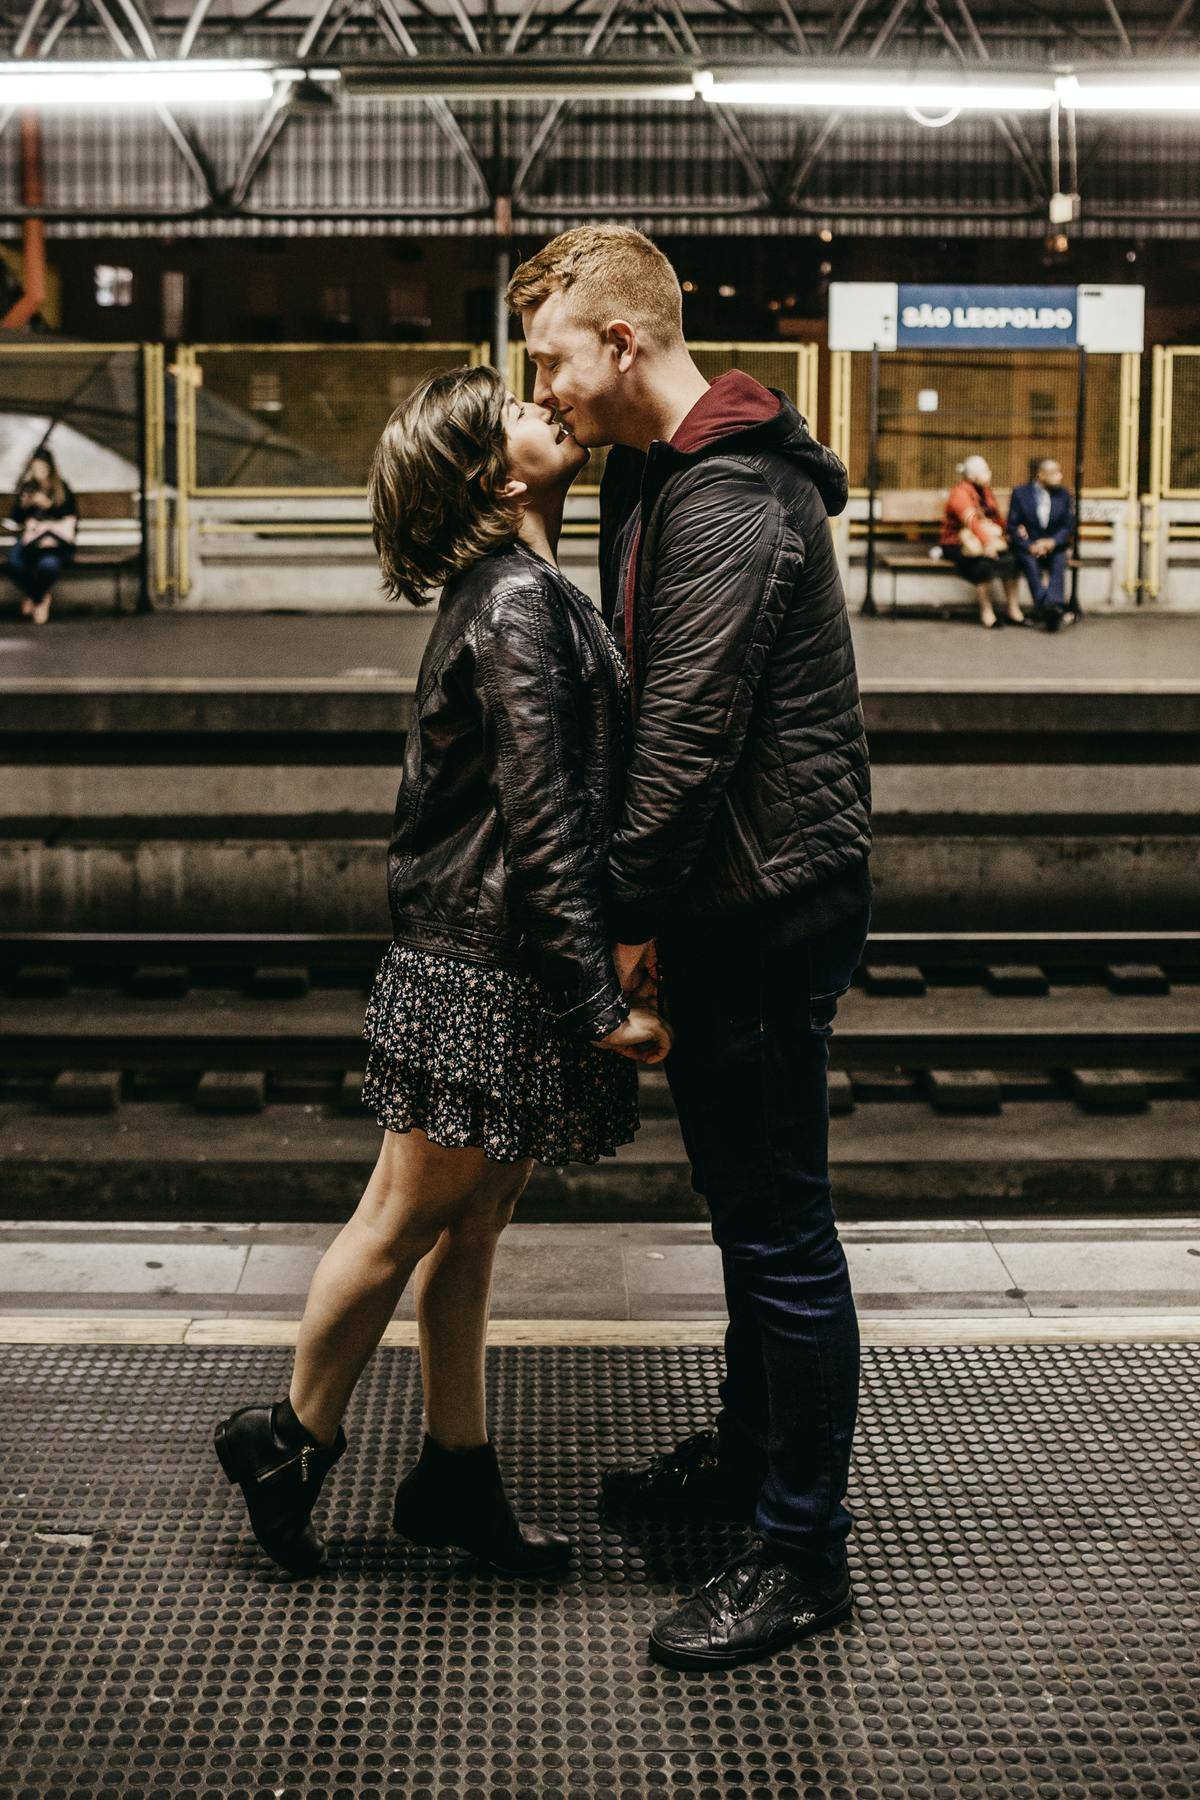 couple kissing on a train platform